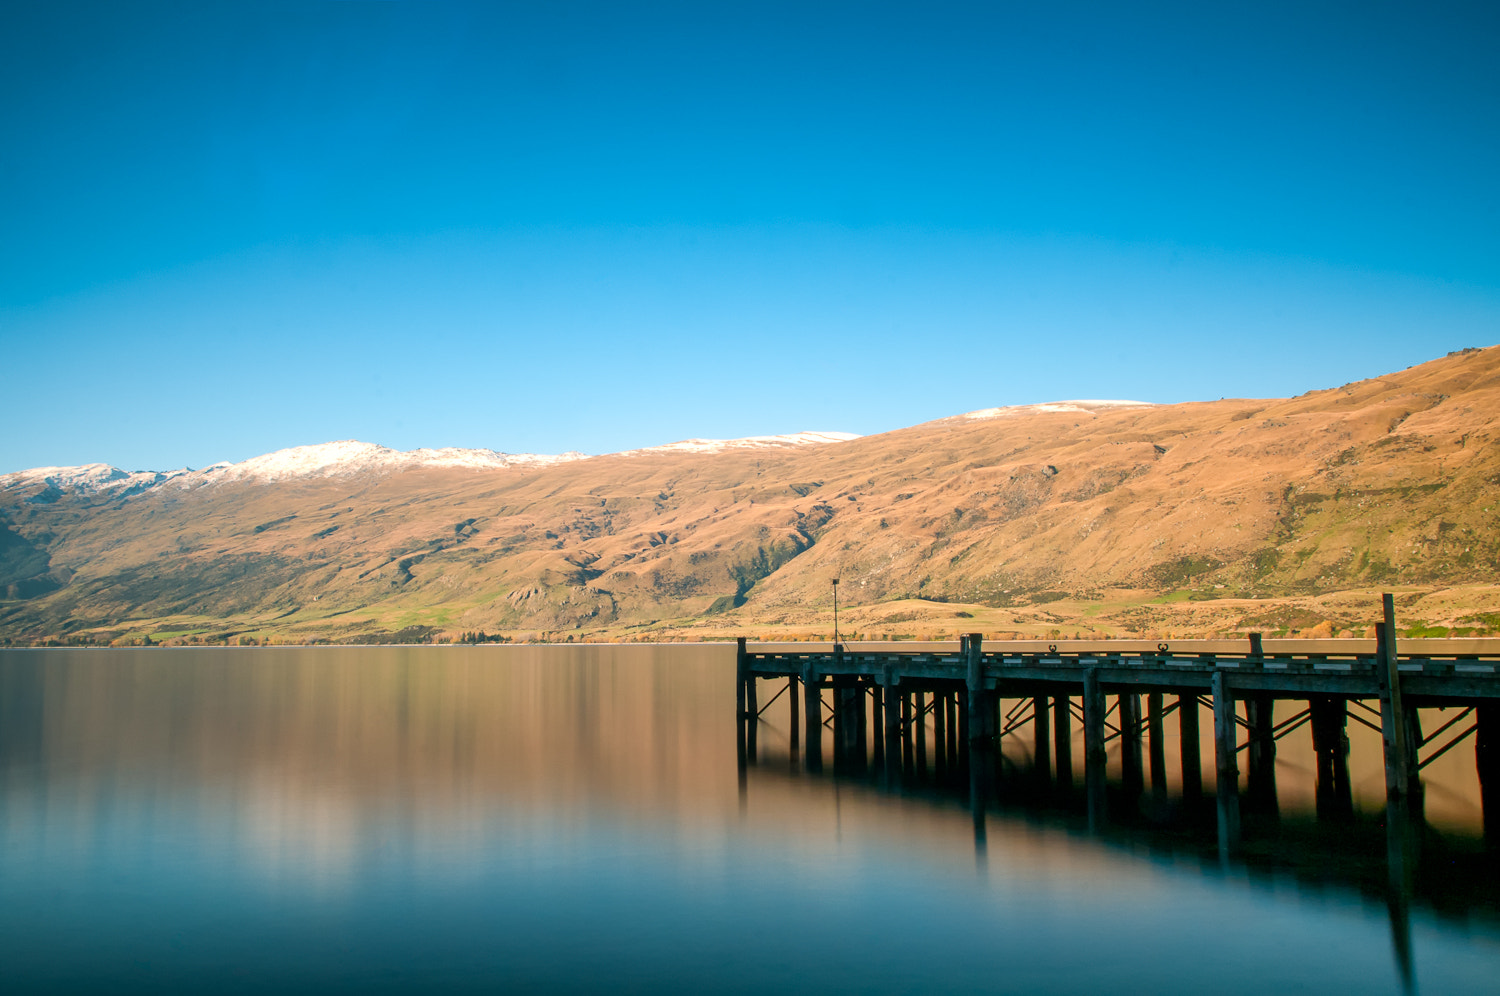 Photograph Kingston jetty by Martin Tyler on 500px